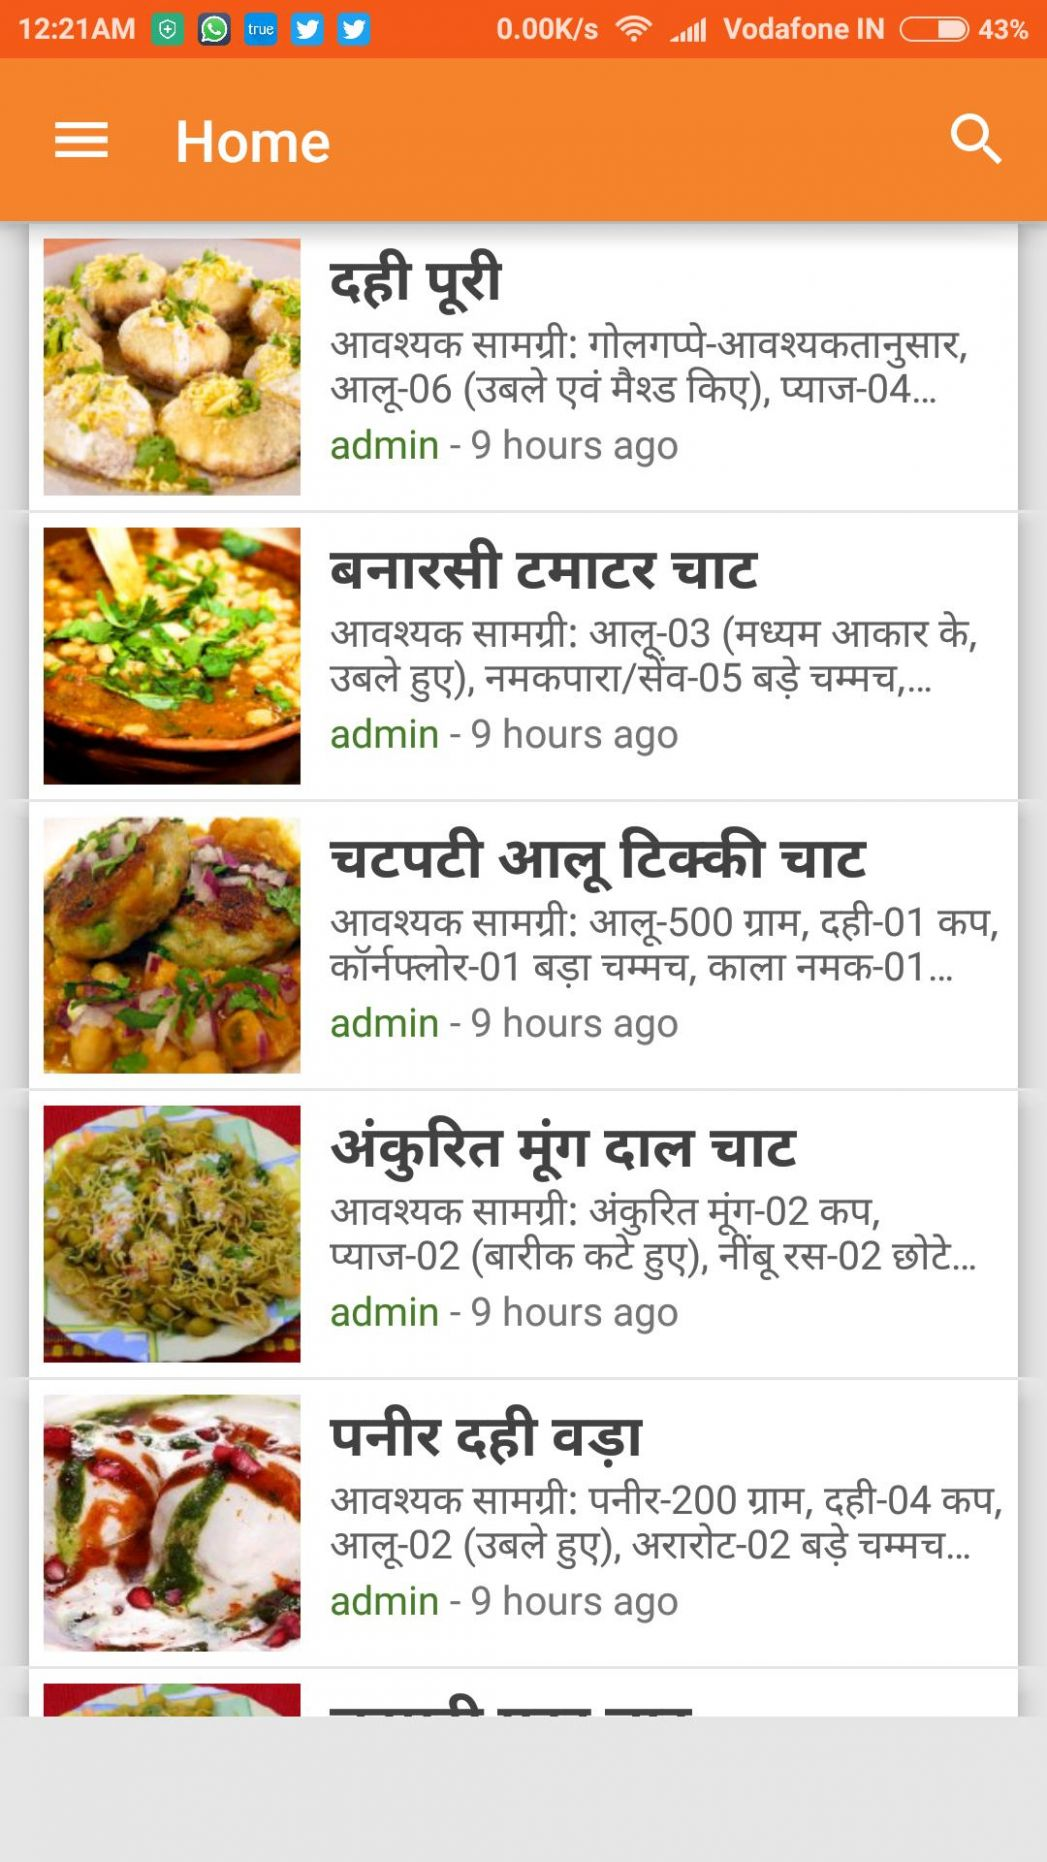 Street Food Recipes in Hindi for Android - APK Download - Recipes Dinner In Hindi